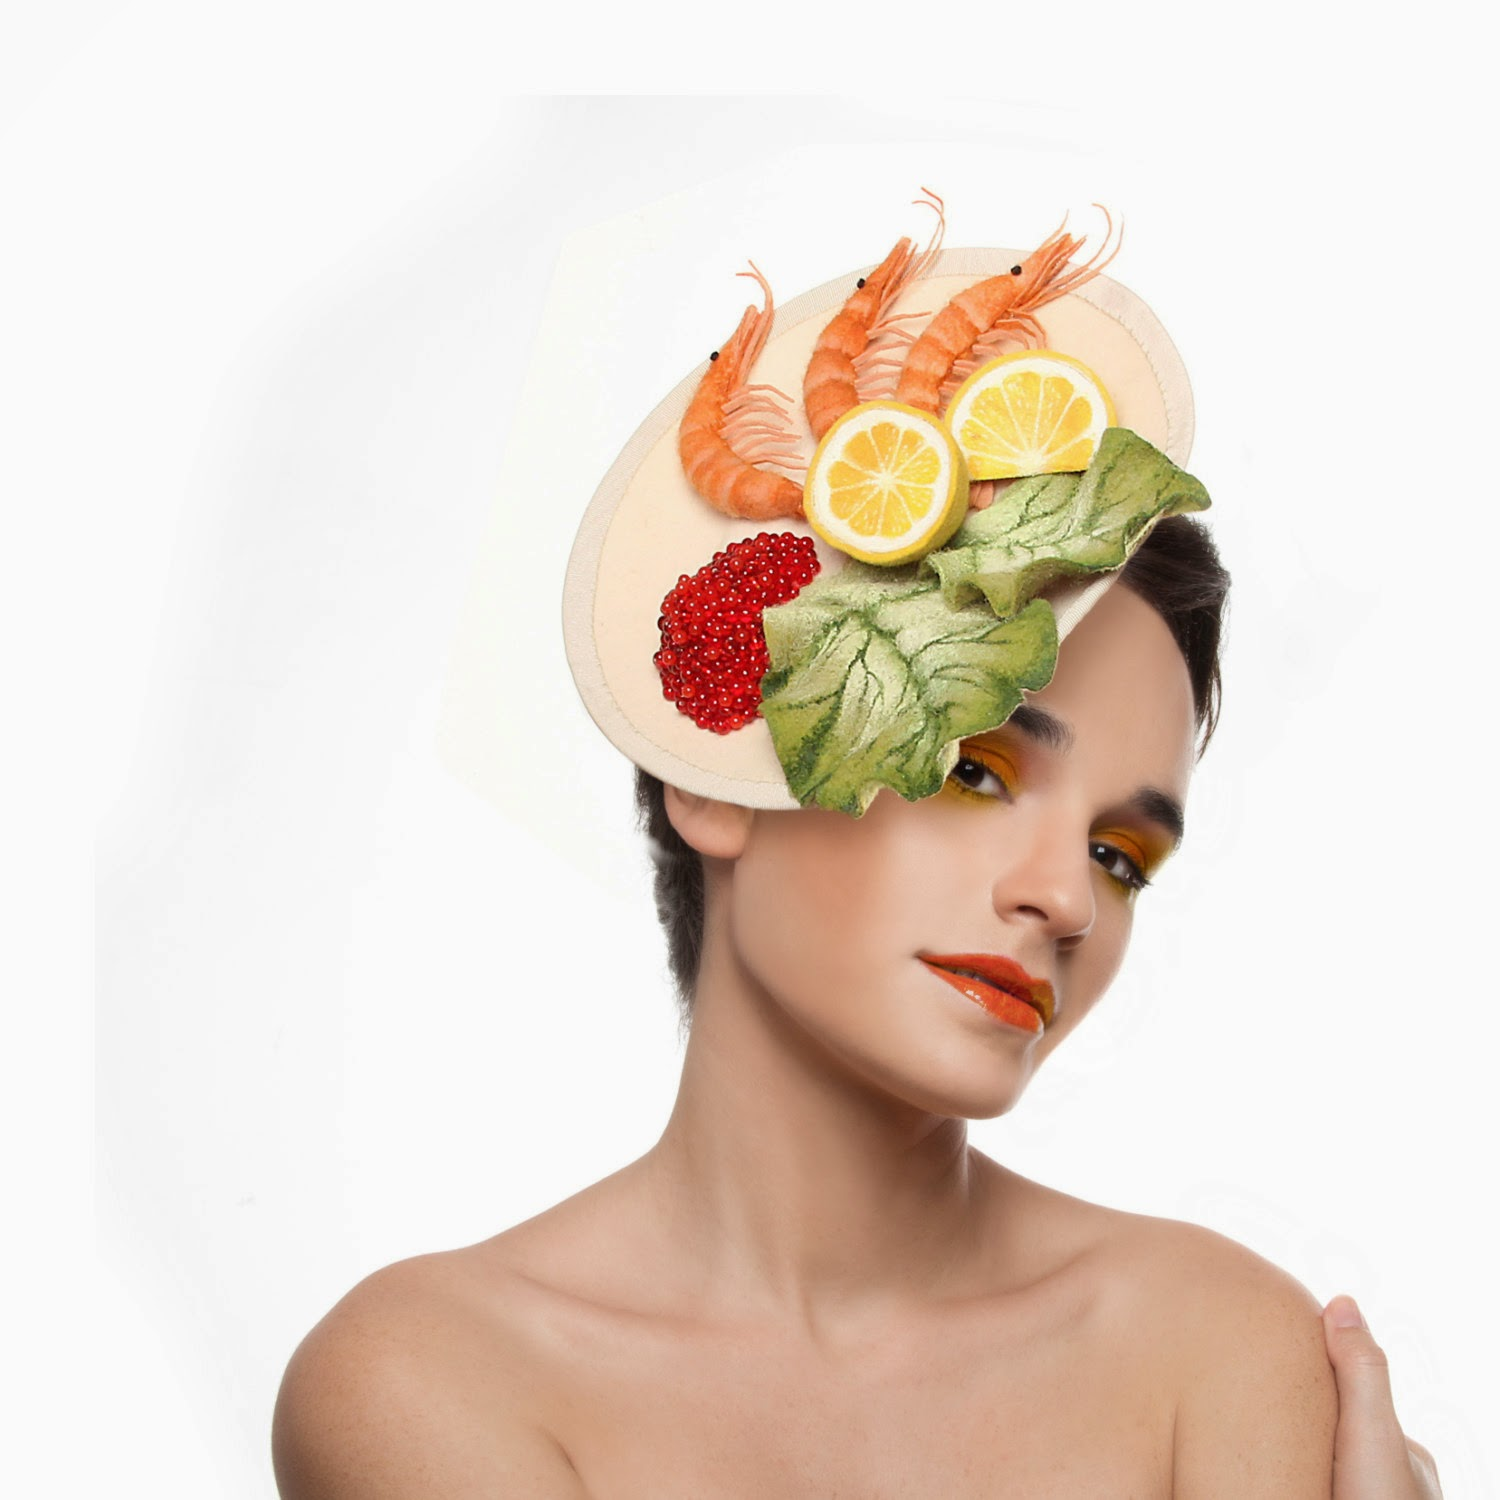 Creative Hats: Simply Creative: Realistic Food Hats By Maor Zabar